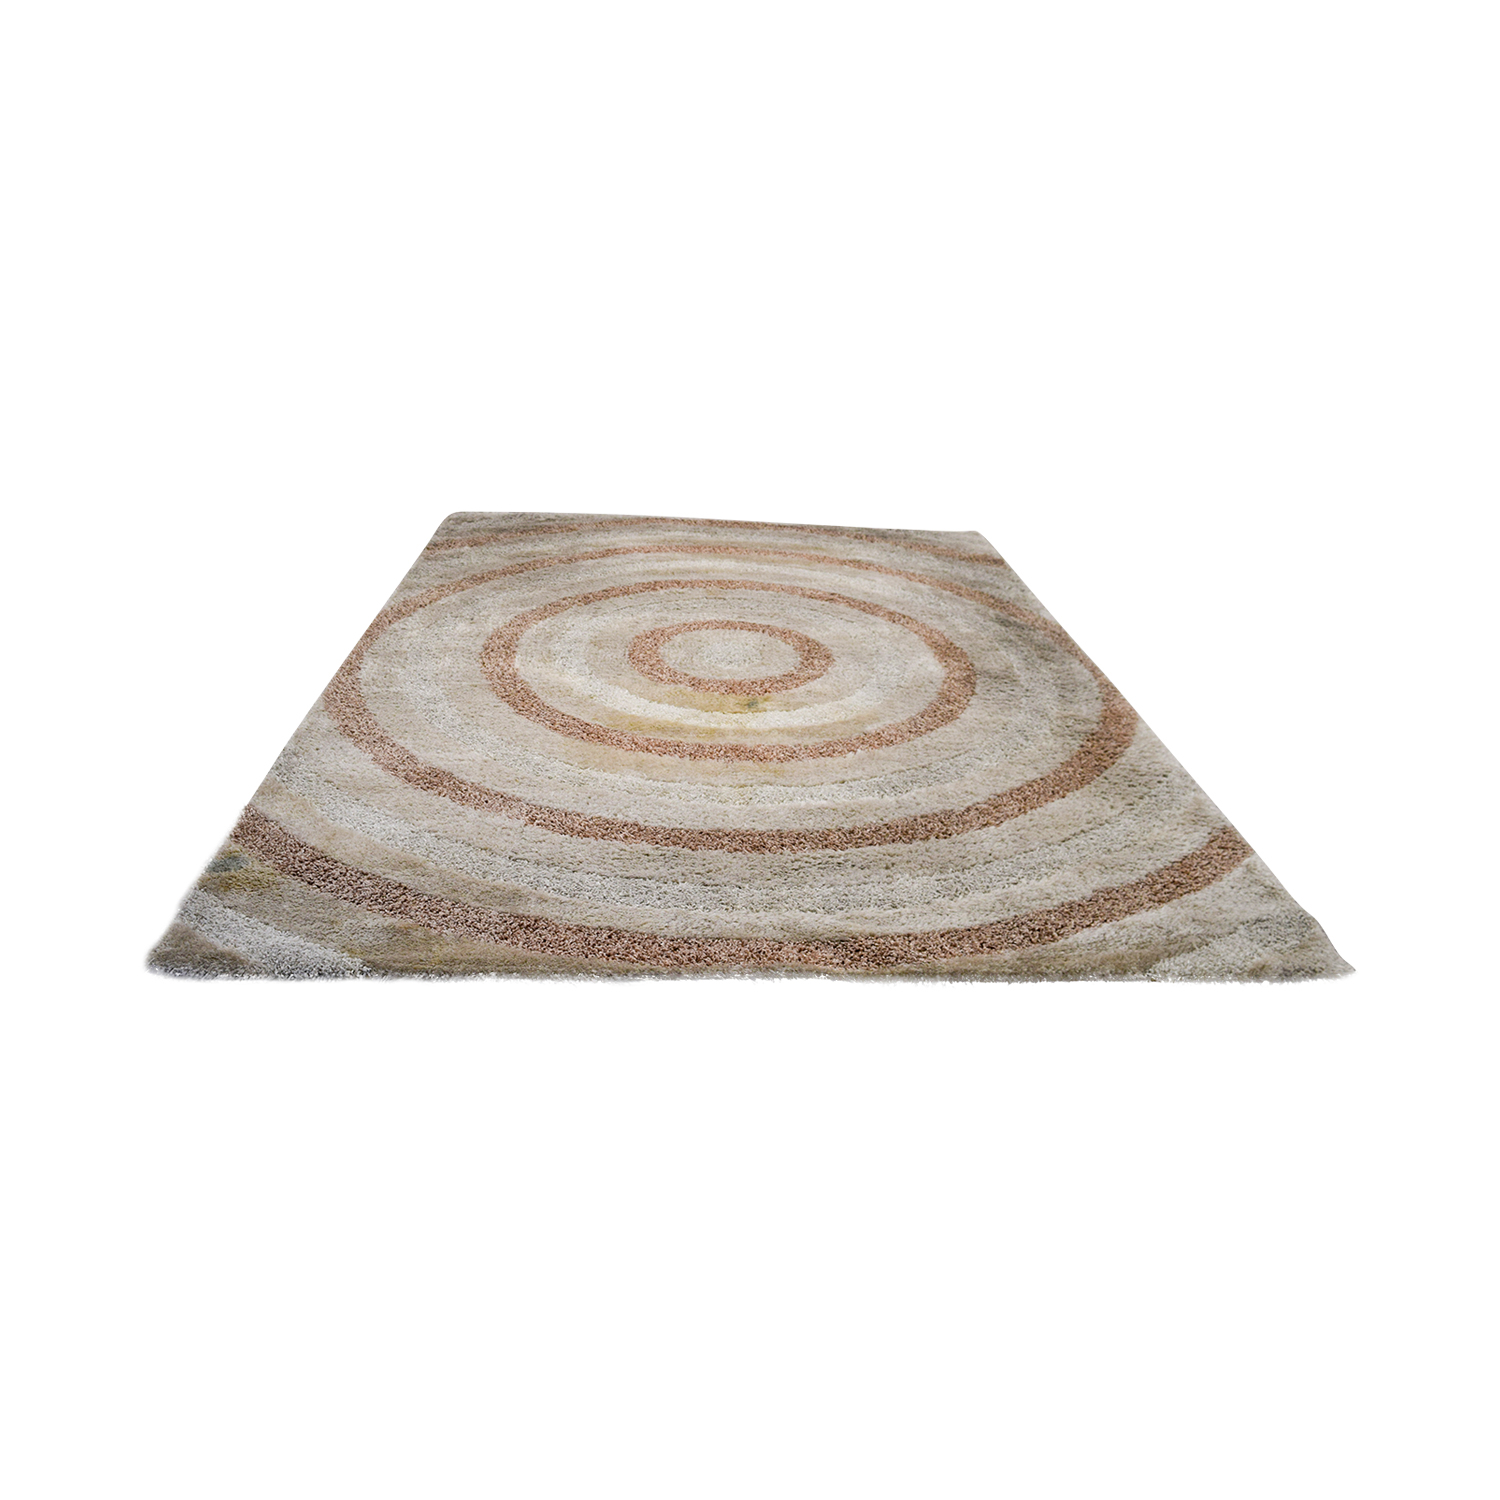 charming at images decoration kitchen foot ft area with for enchanting circle large white navy green ideas room rugs feet nz trends where rug round living